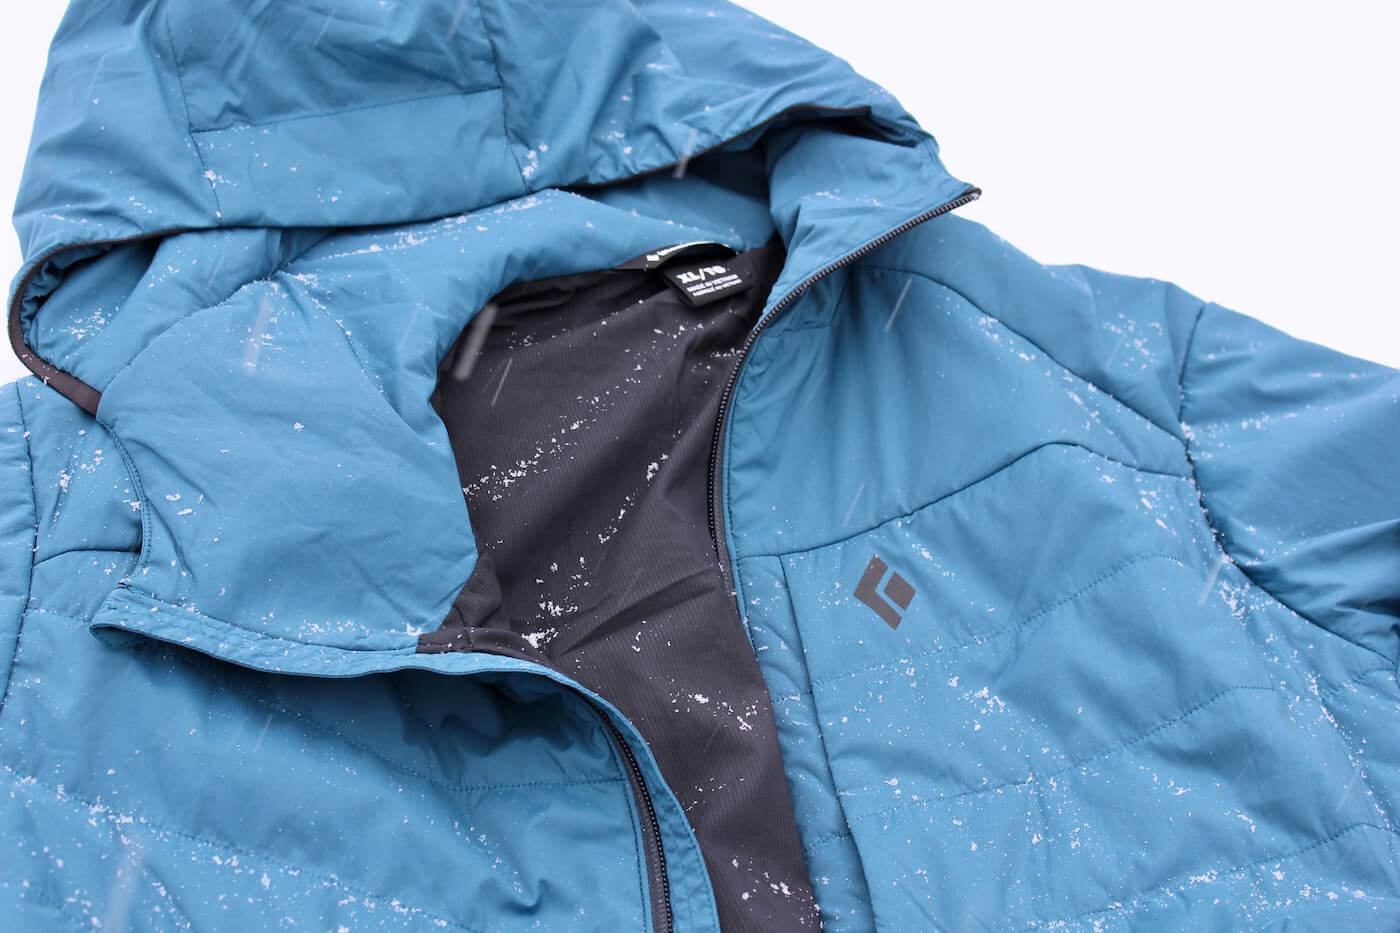 This photo shows the Black Diamond First Light Stretch Hoody.